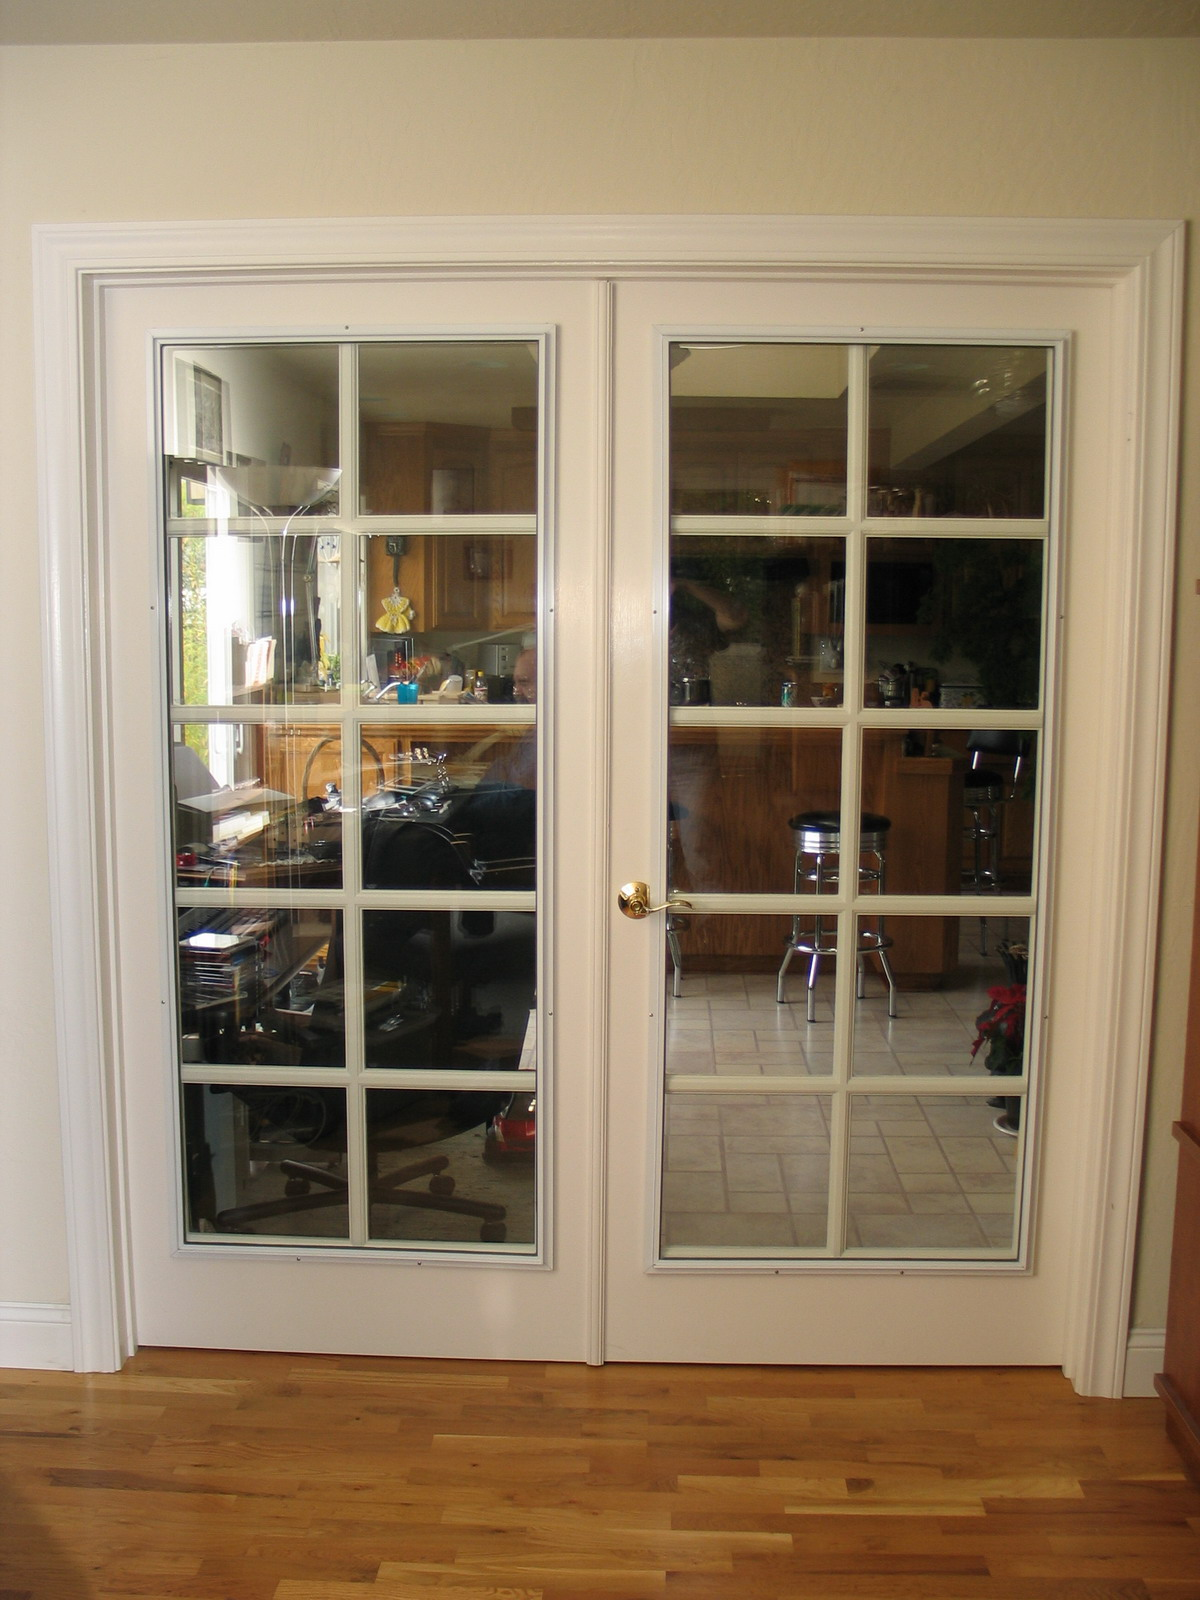 Soundproofing Glass Panel Mounted on an Interior French Door : soundproofing door - pezcame.com